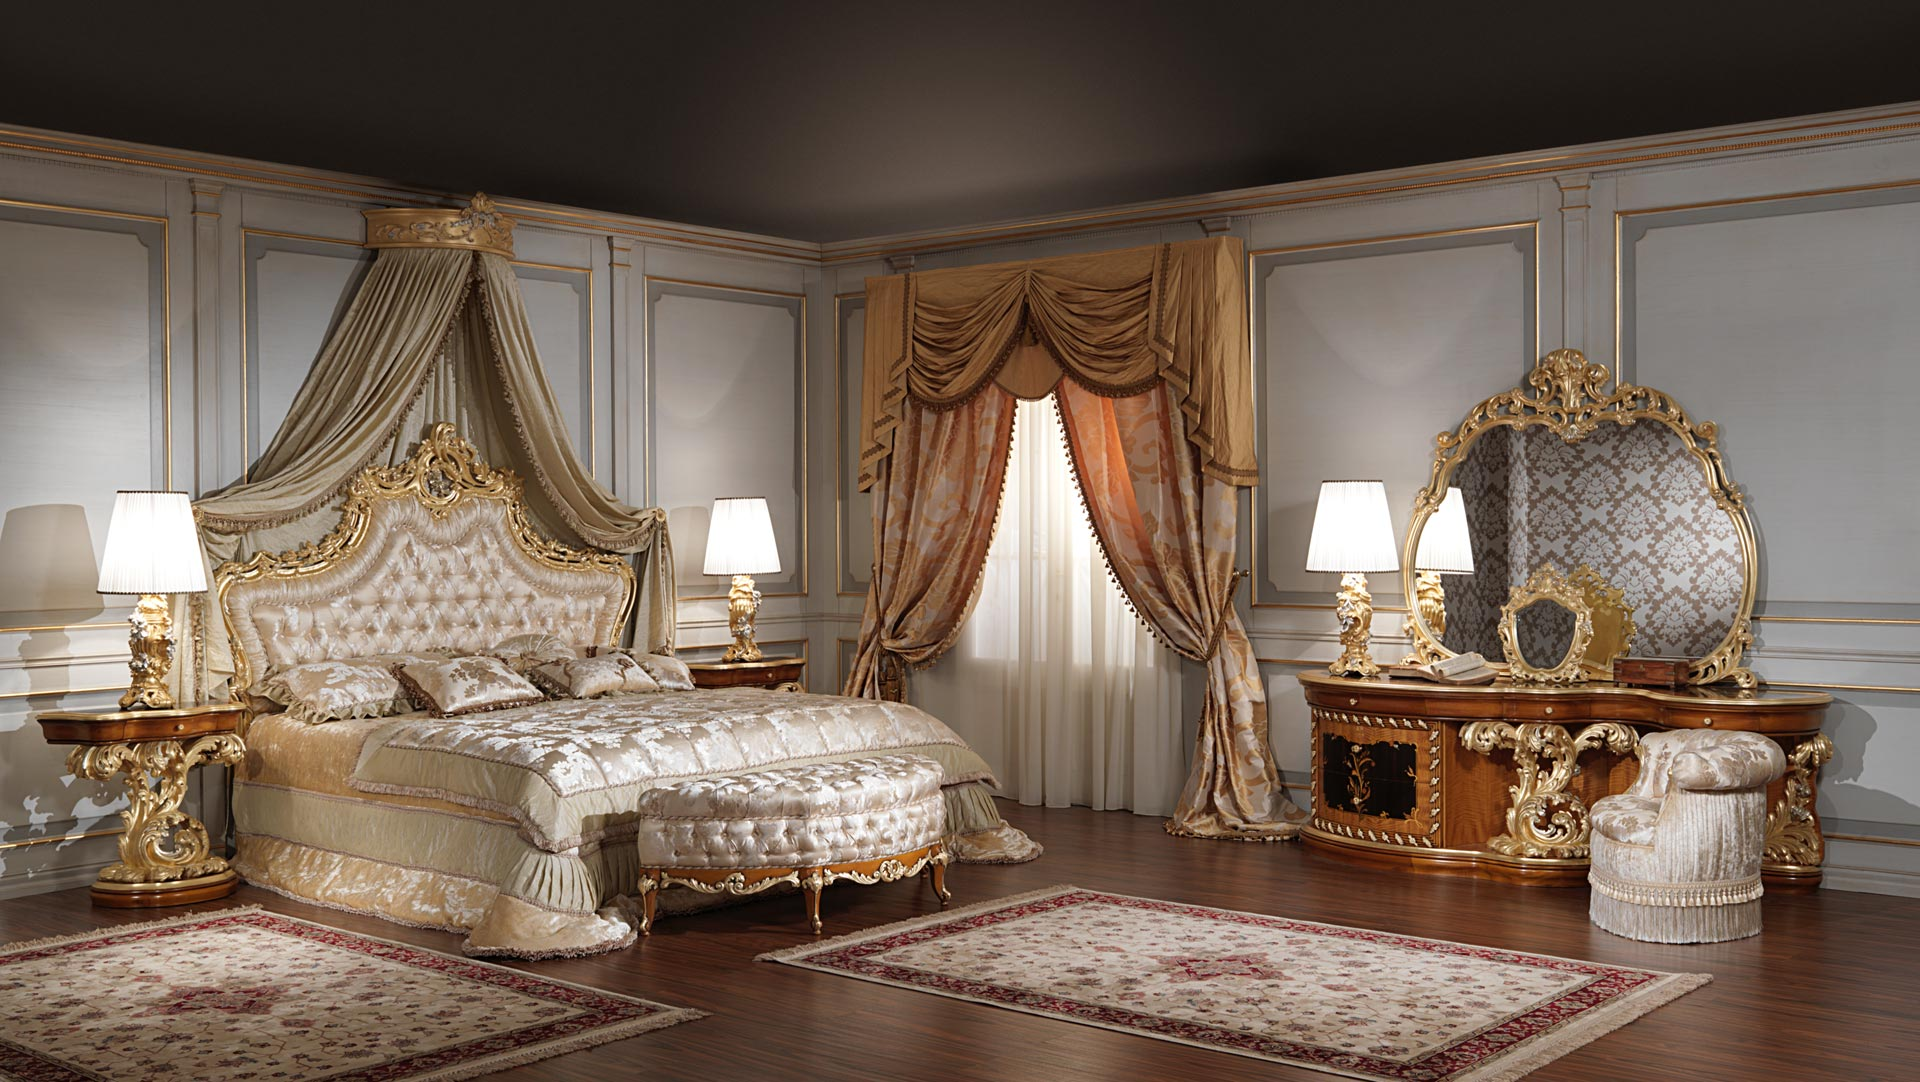 Most Beautifull Deco Paint Complete Bed Set: Luxury Classic Bedroom Roman Baroque Style